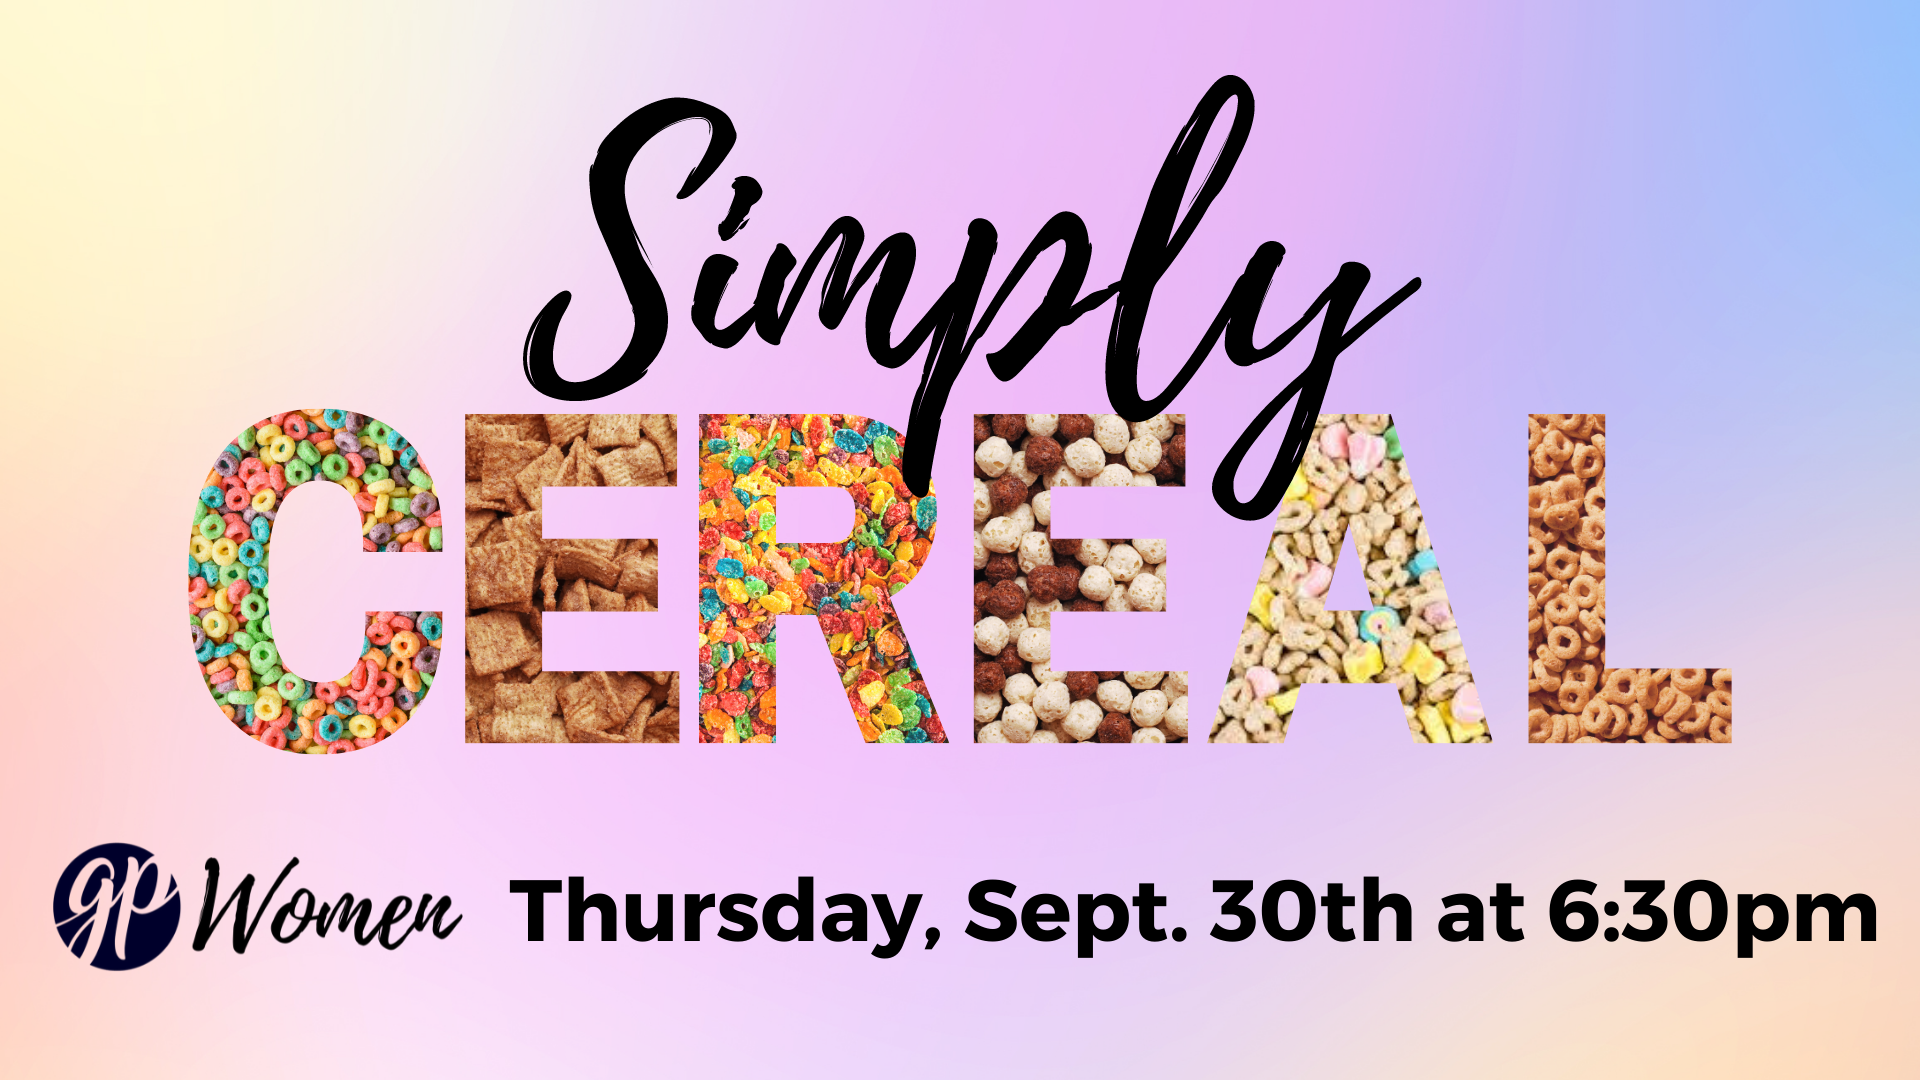 Copy of Simply Cereal image